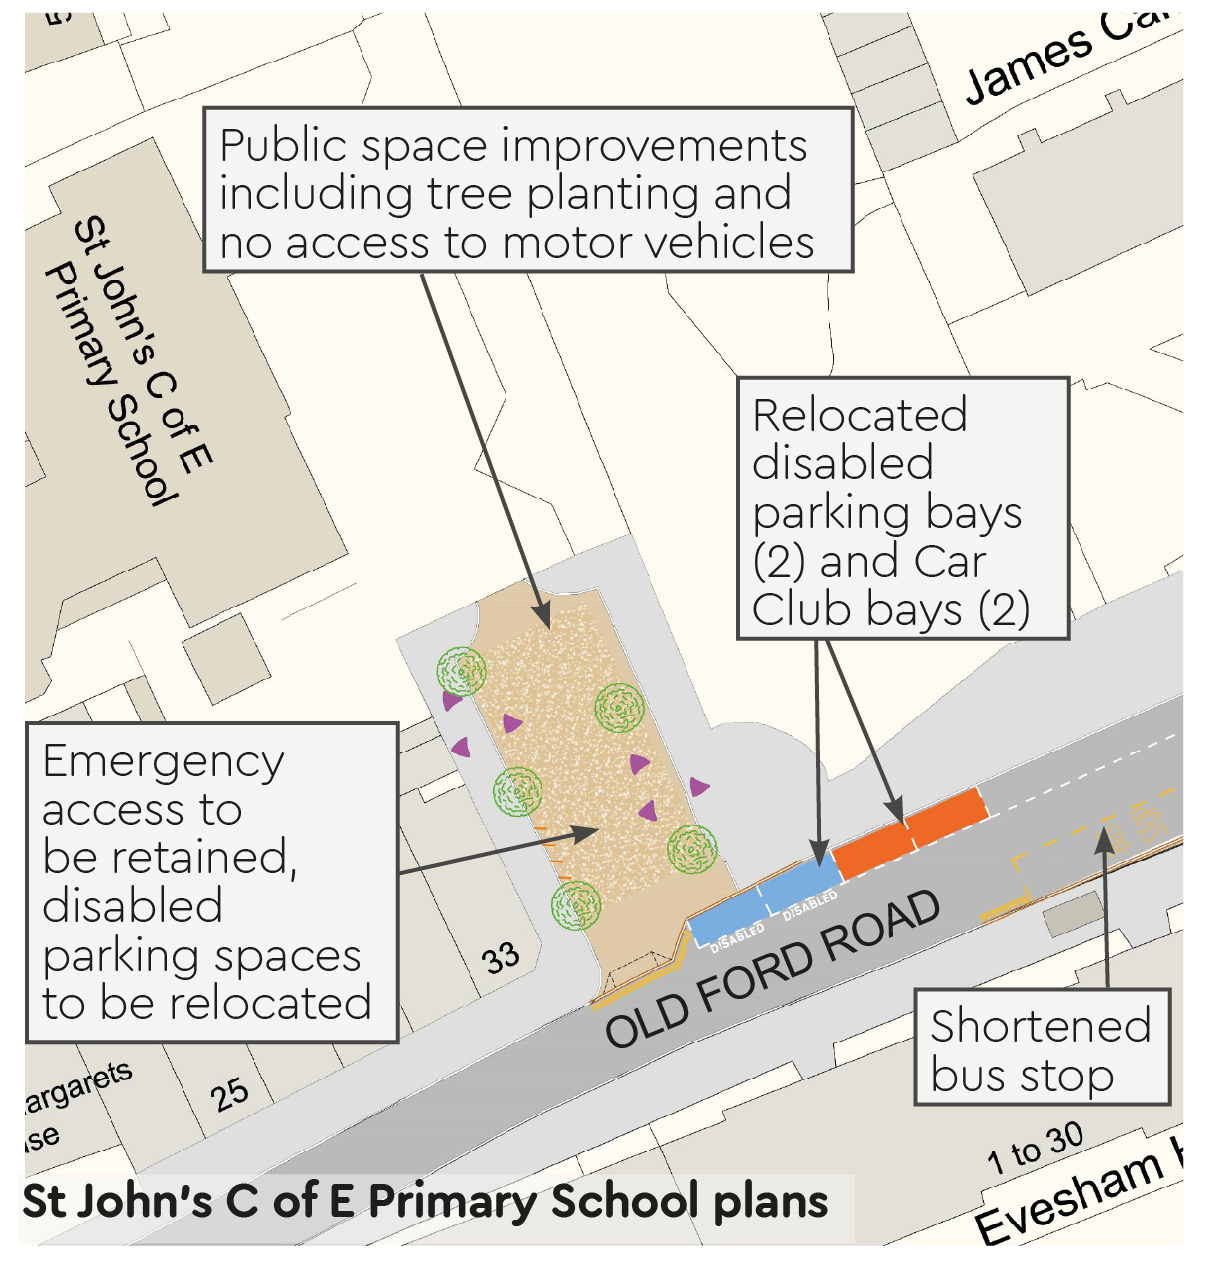 St John's Church of England Primary School Plan: closure of Peel Grove from Old Ford Road, public space improvements including tree planting and emergency vehicle access to be retained, disabled parking relocated to Old Ford Road and 2 Car Club bays.